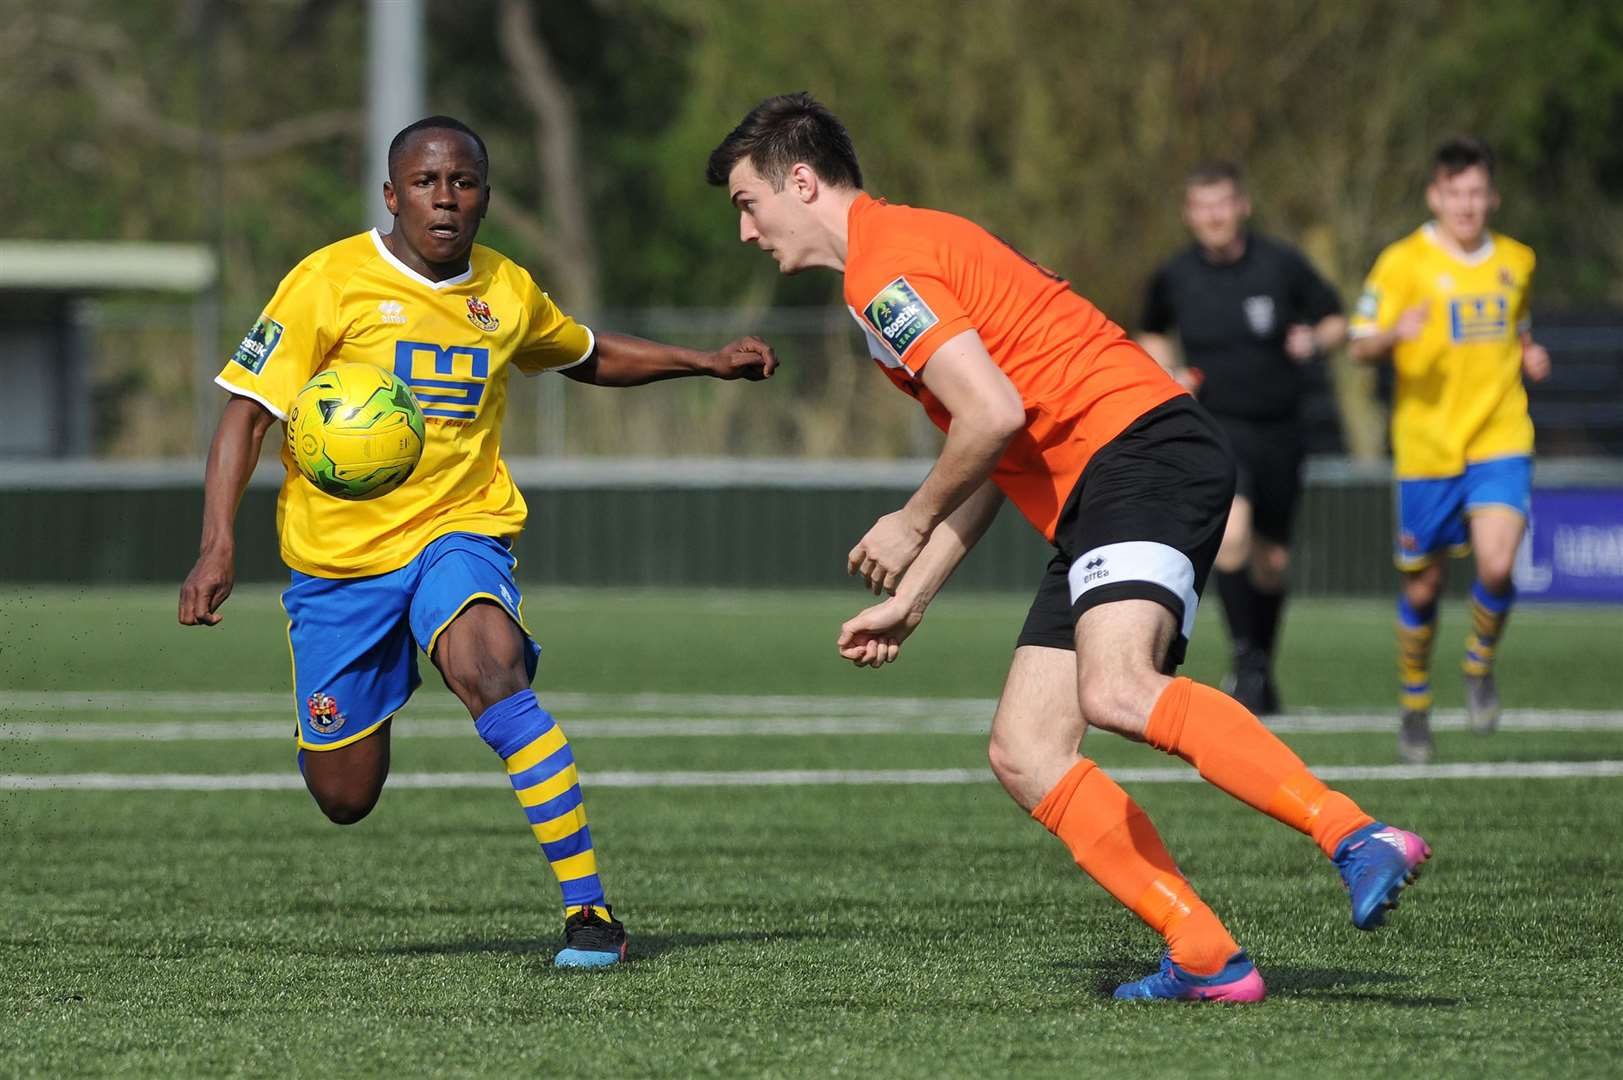 FOOTBALL - AFC Sudbury v Bury Town FC...Pictured: Panashe Mundawarara (S) and Kyran Clements (B)...PICTURE: Mecha Morton.... (8983078)